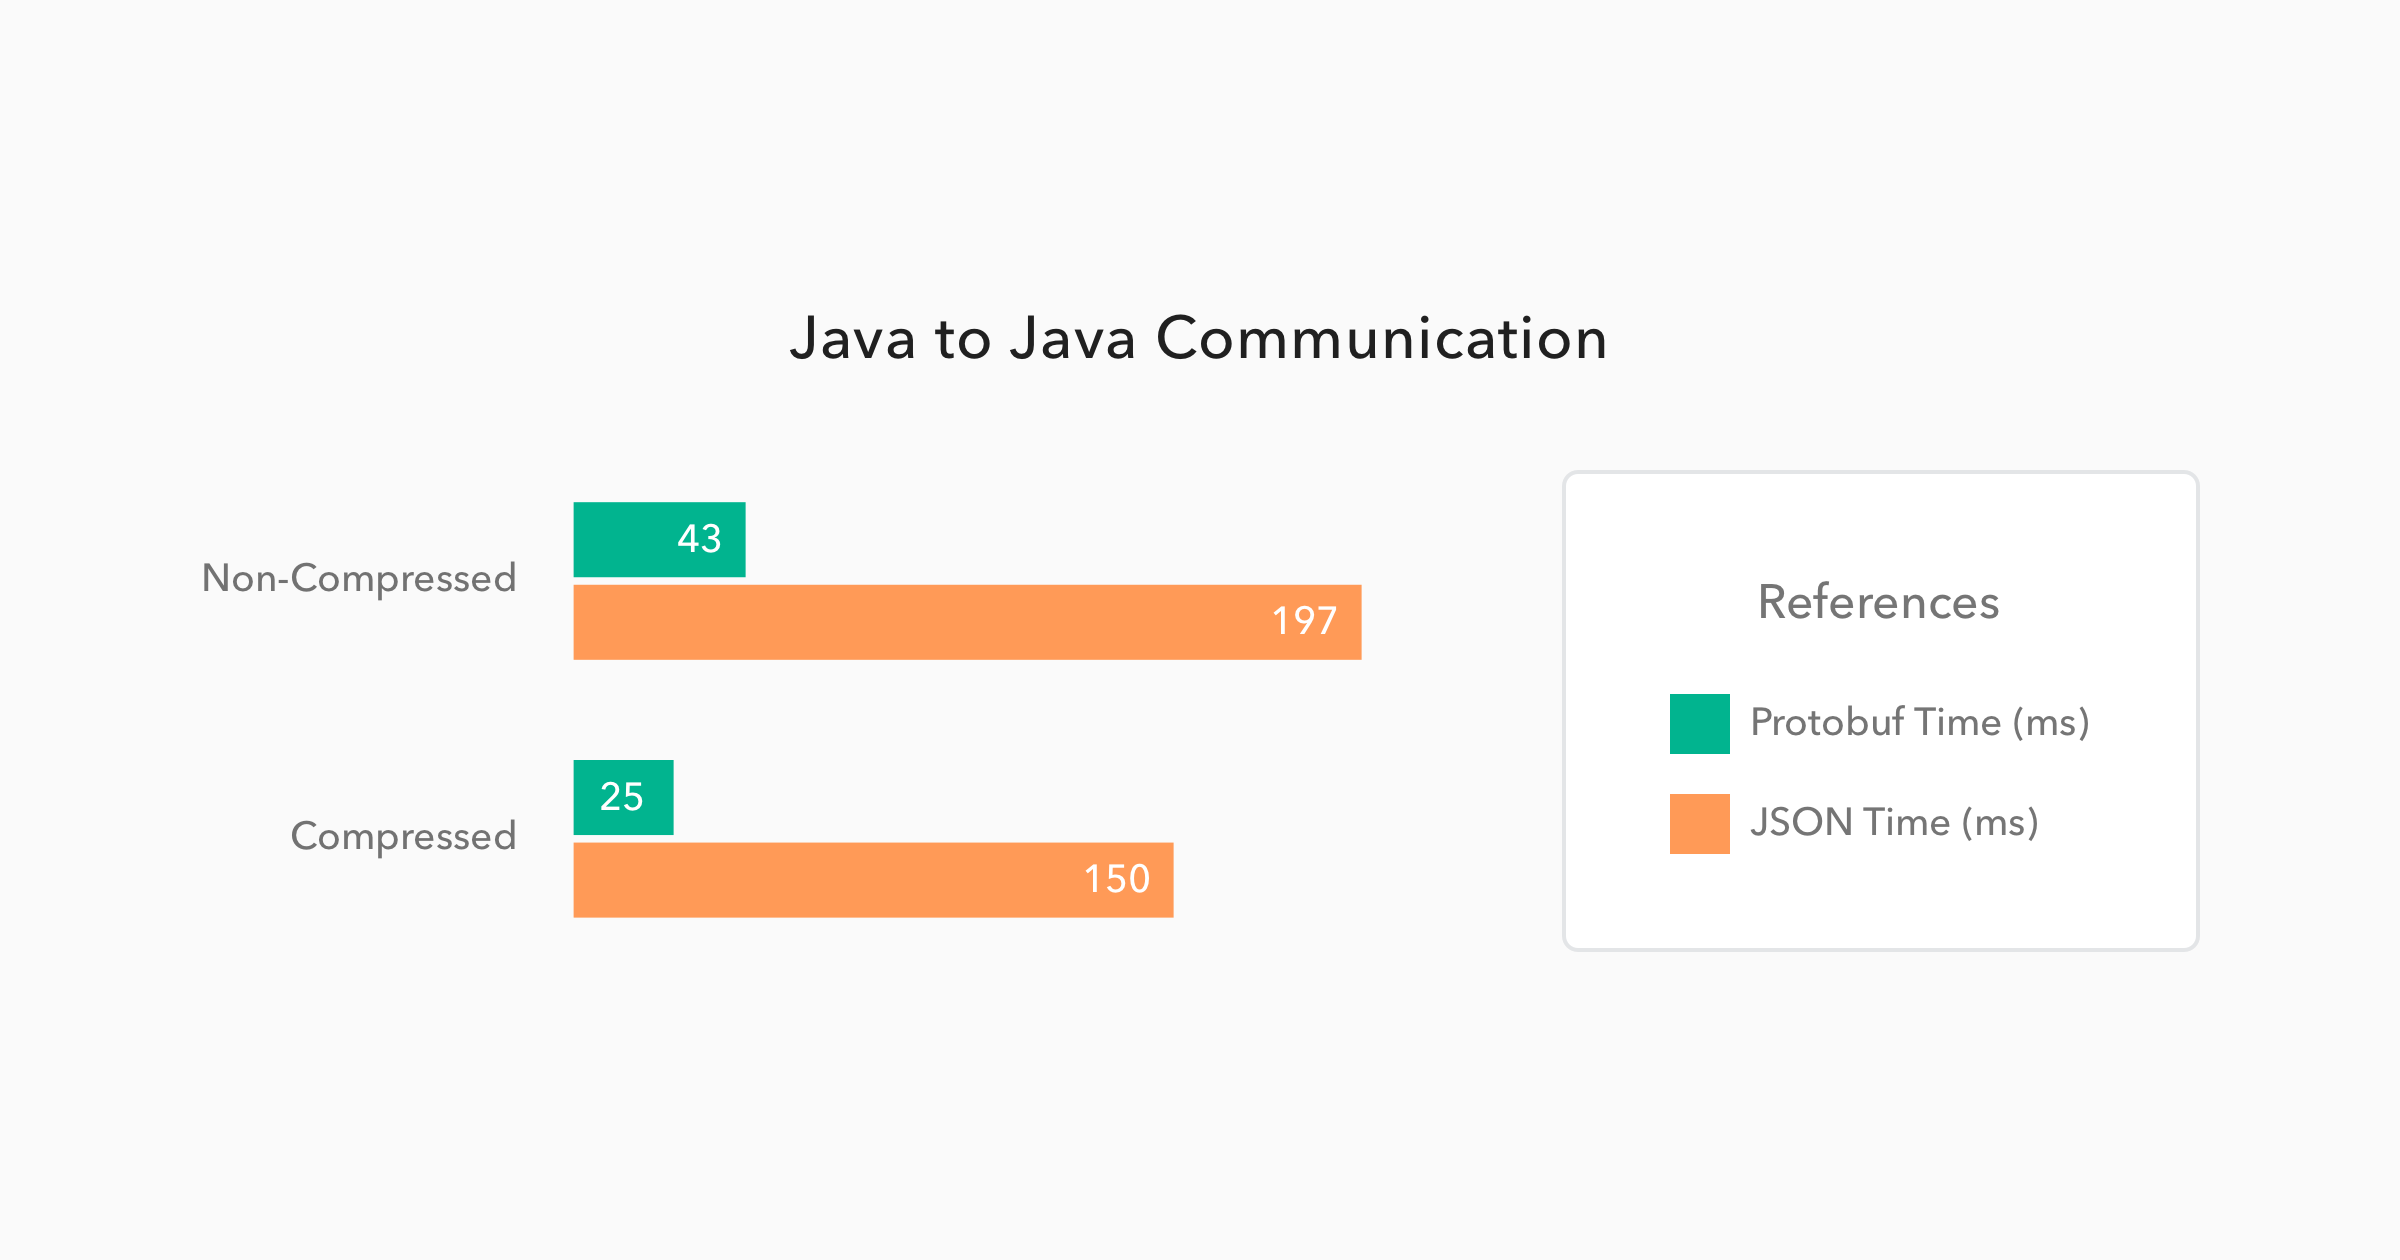 Java to Java Communication